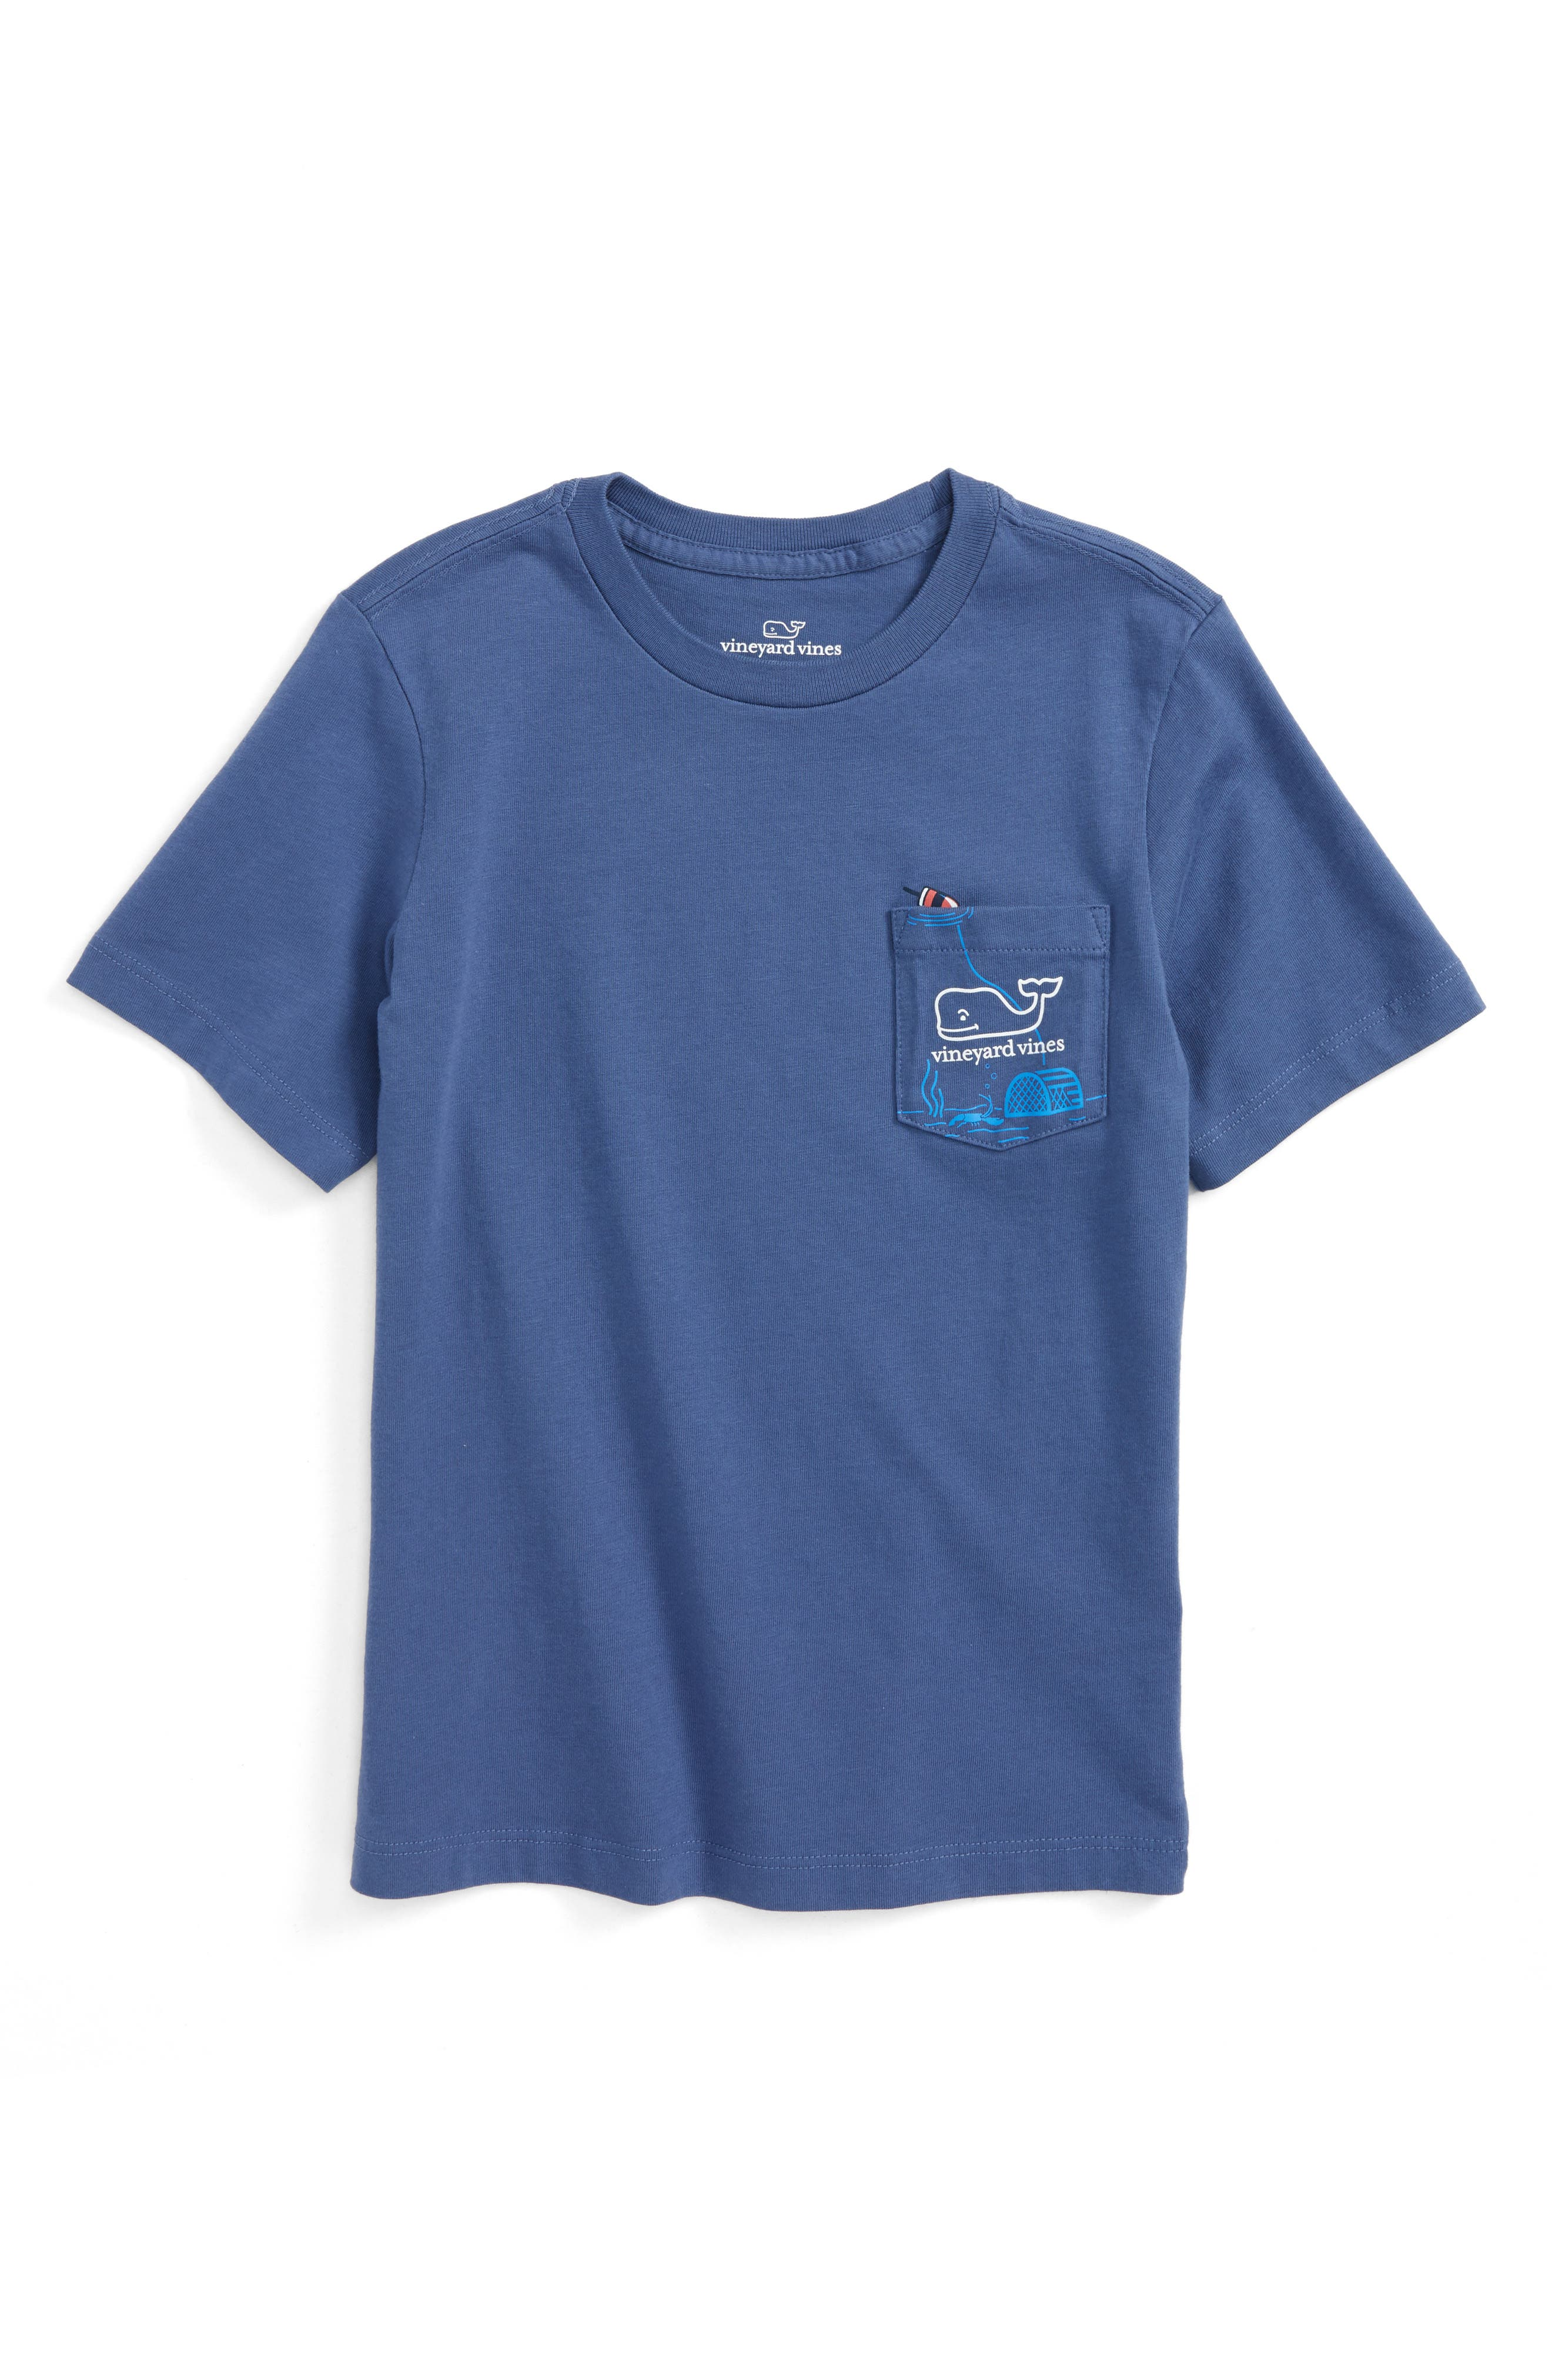 Vineyard Vines Lobster Trap Cotton T-Shirt (Toddler Boys, Little Boys & Big Boys)